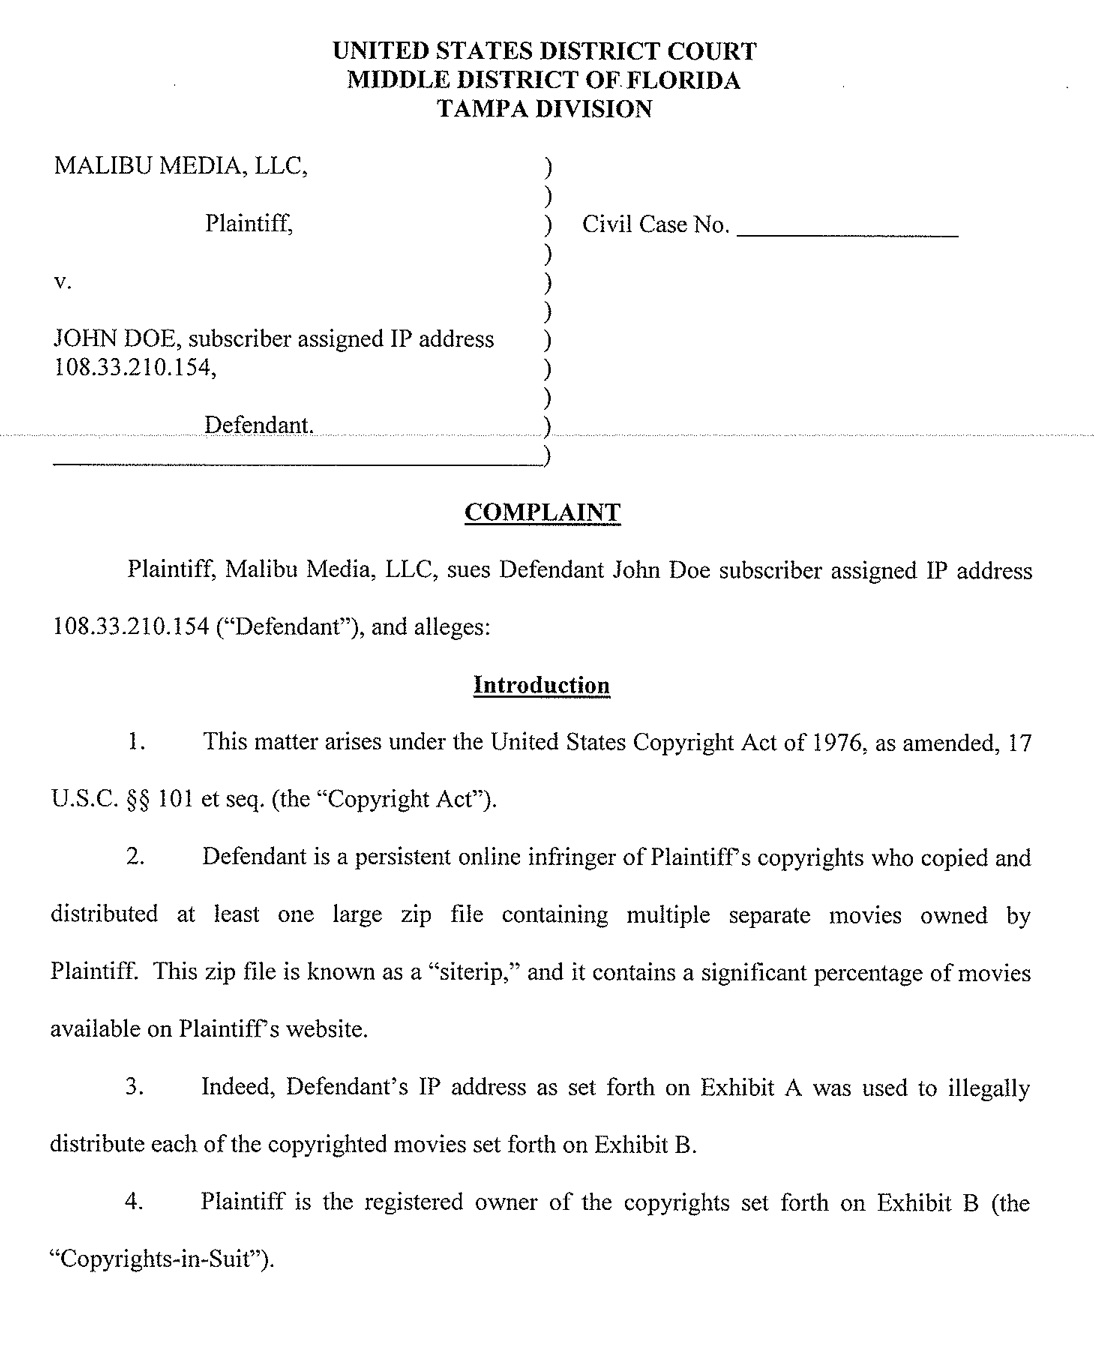 6 New Malibu Media Lawsuits Were Filed In Florida Today